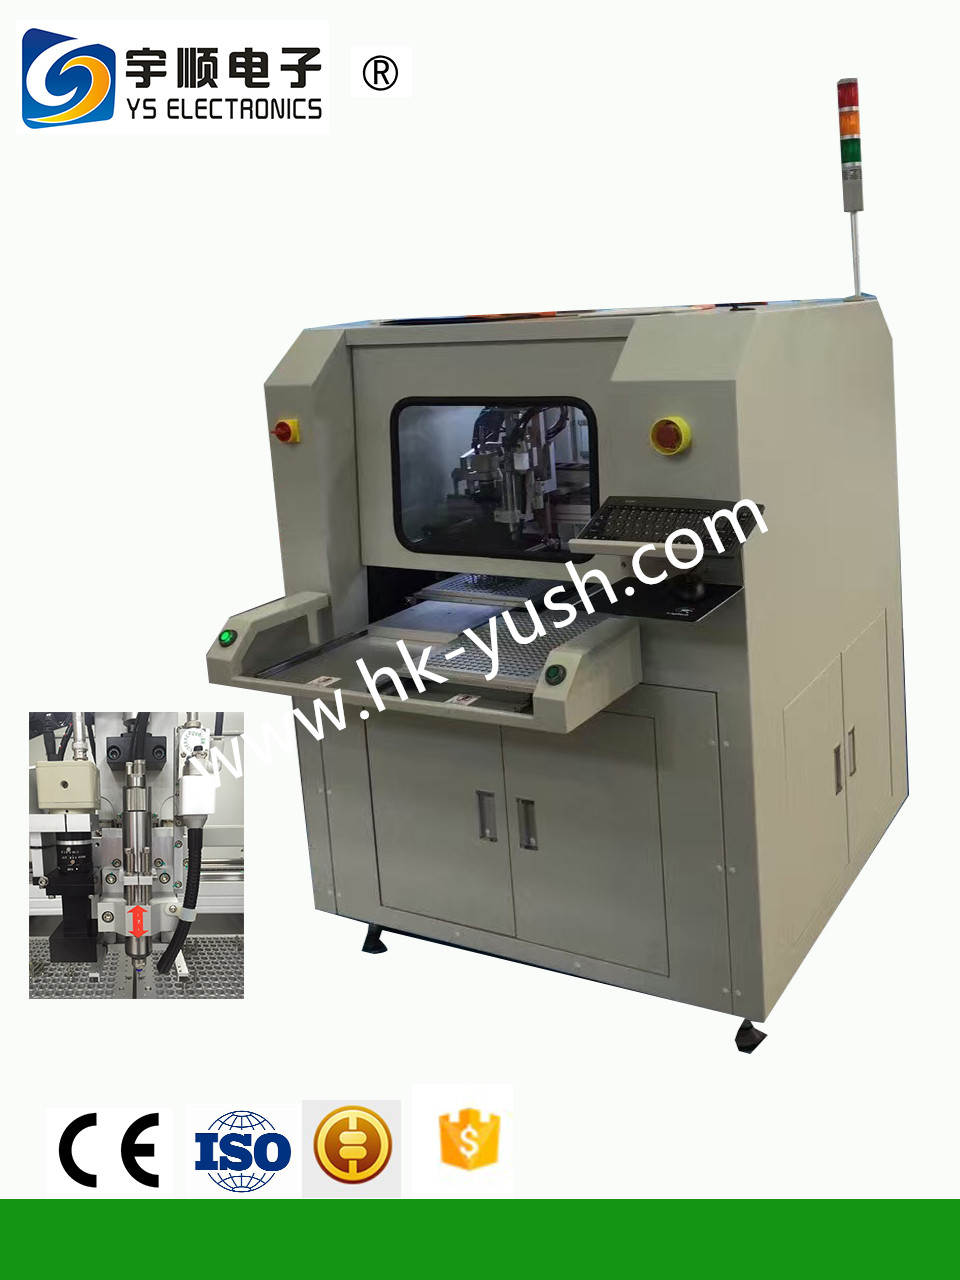 Depaneling machine,Electronics factory in North America dedicated PCB Depaneling machine-Buy V Cut Pcb Depaneling,Pcb V Cut Machine,Pcb Making Machine Product on pcbcutting.com